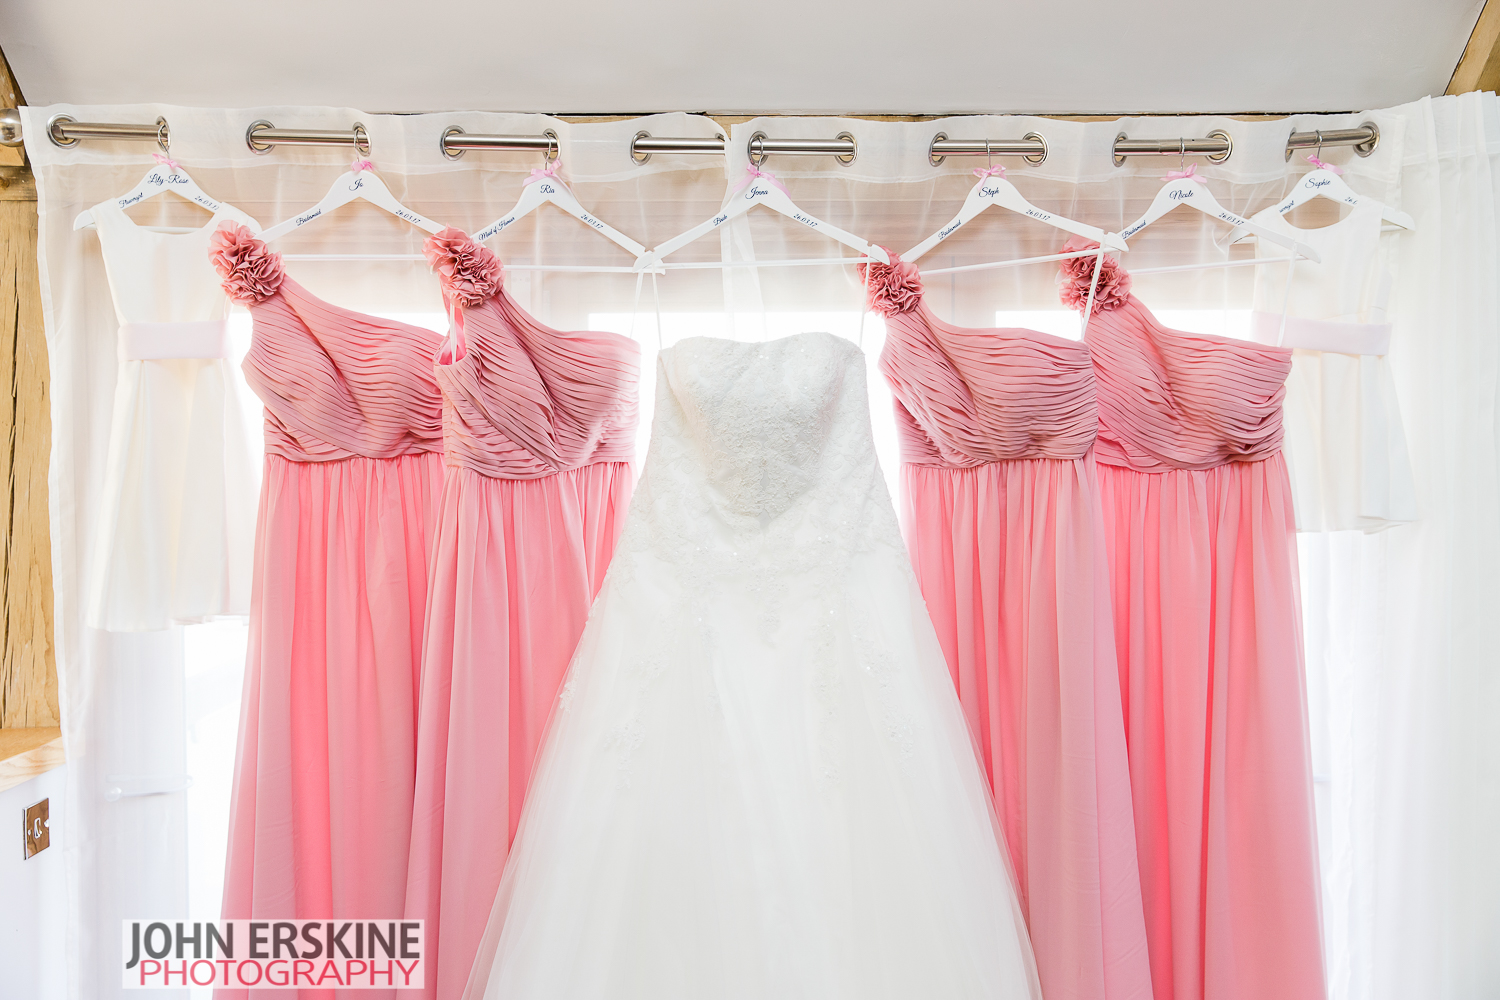 All The Girls Dresses Bridal Wedding Dress Hanging Up